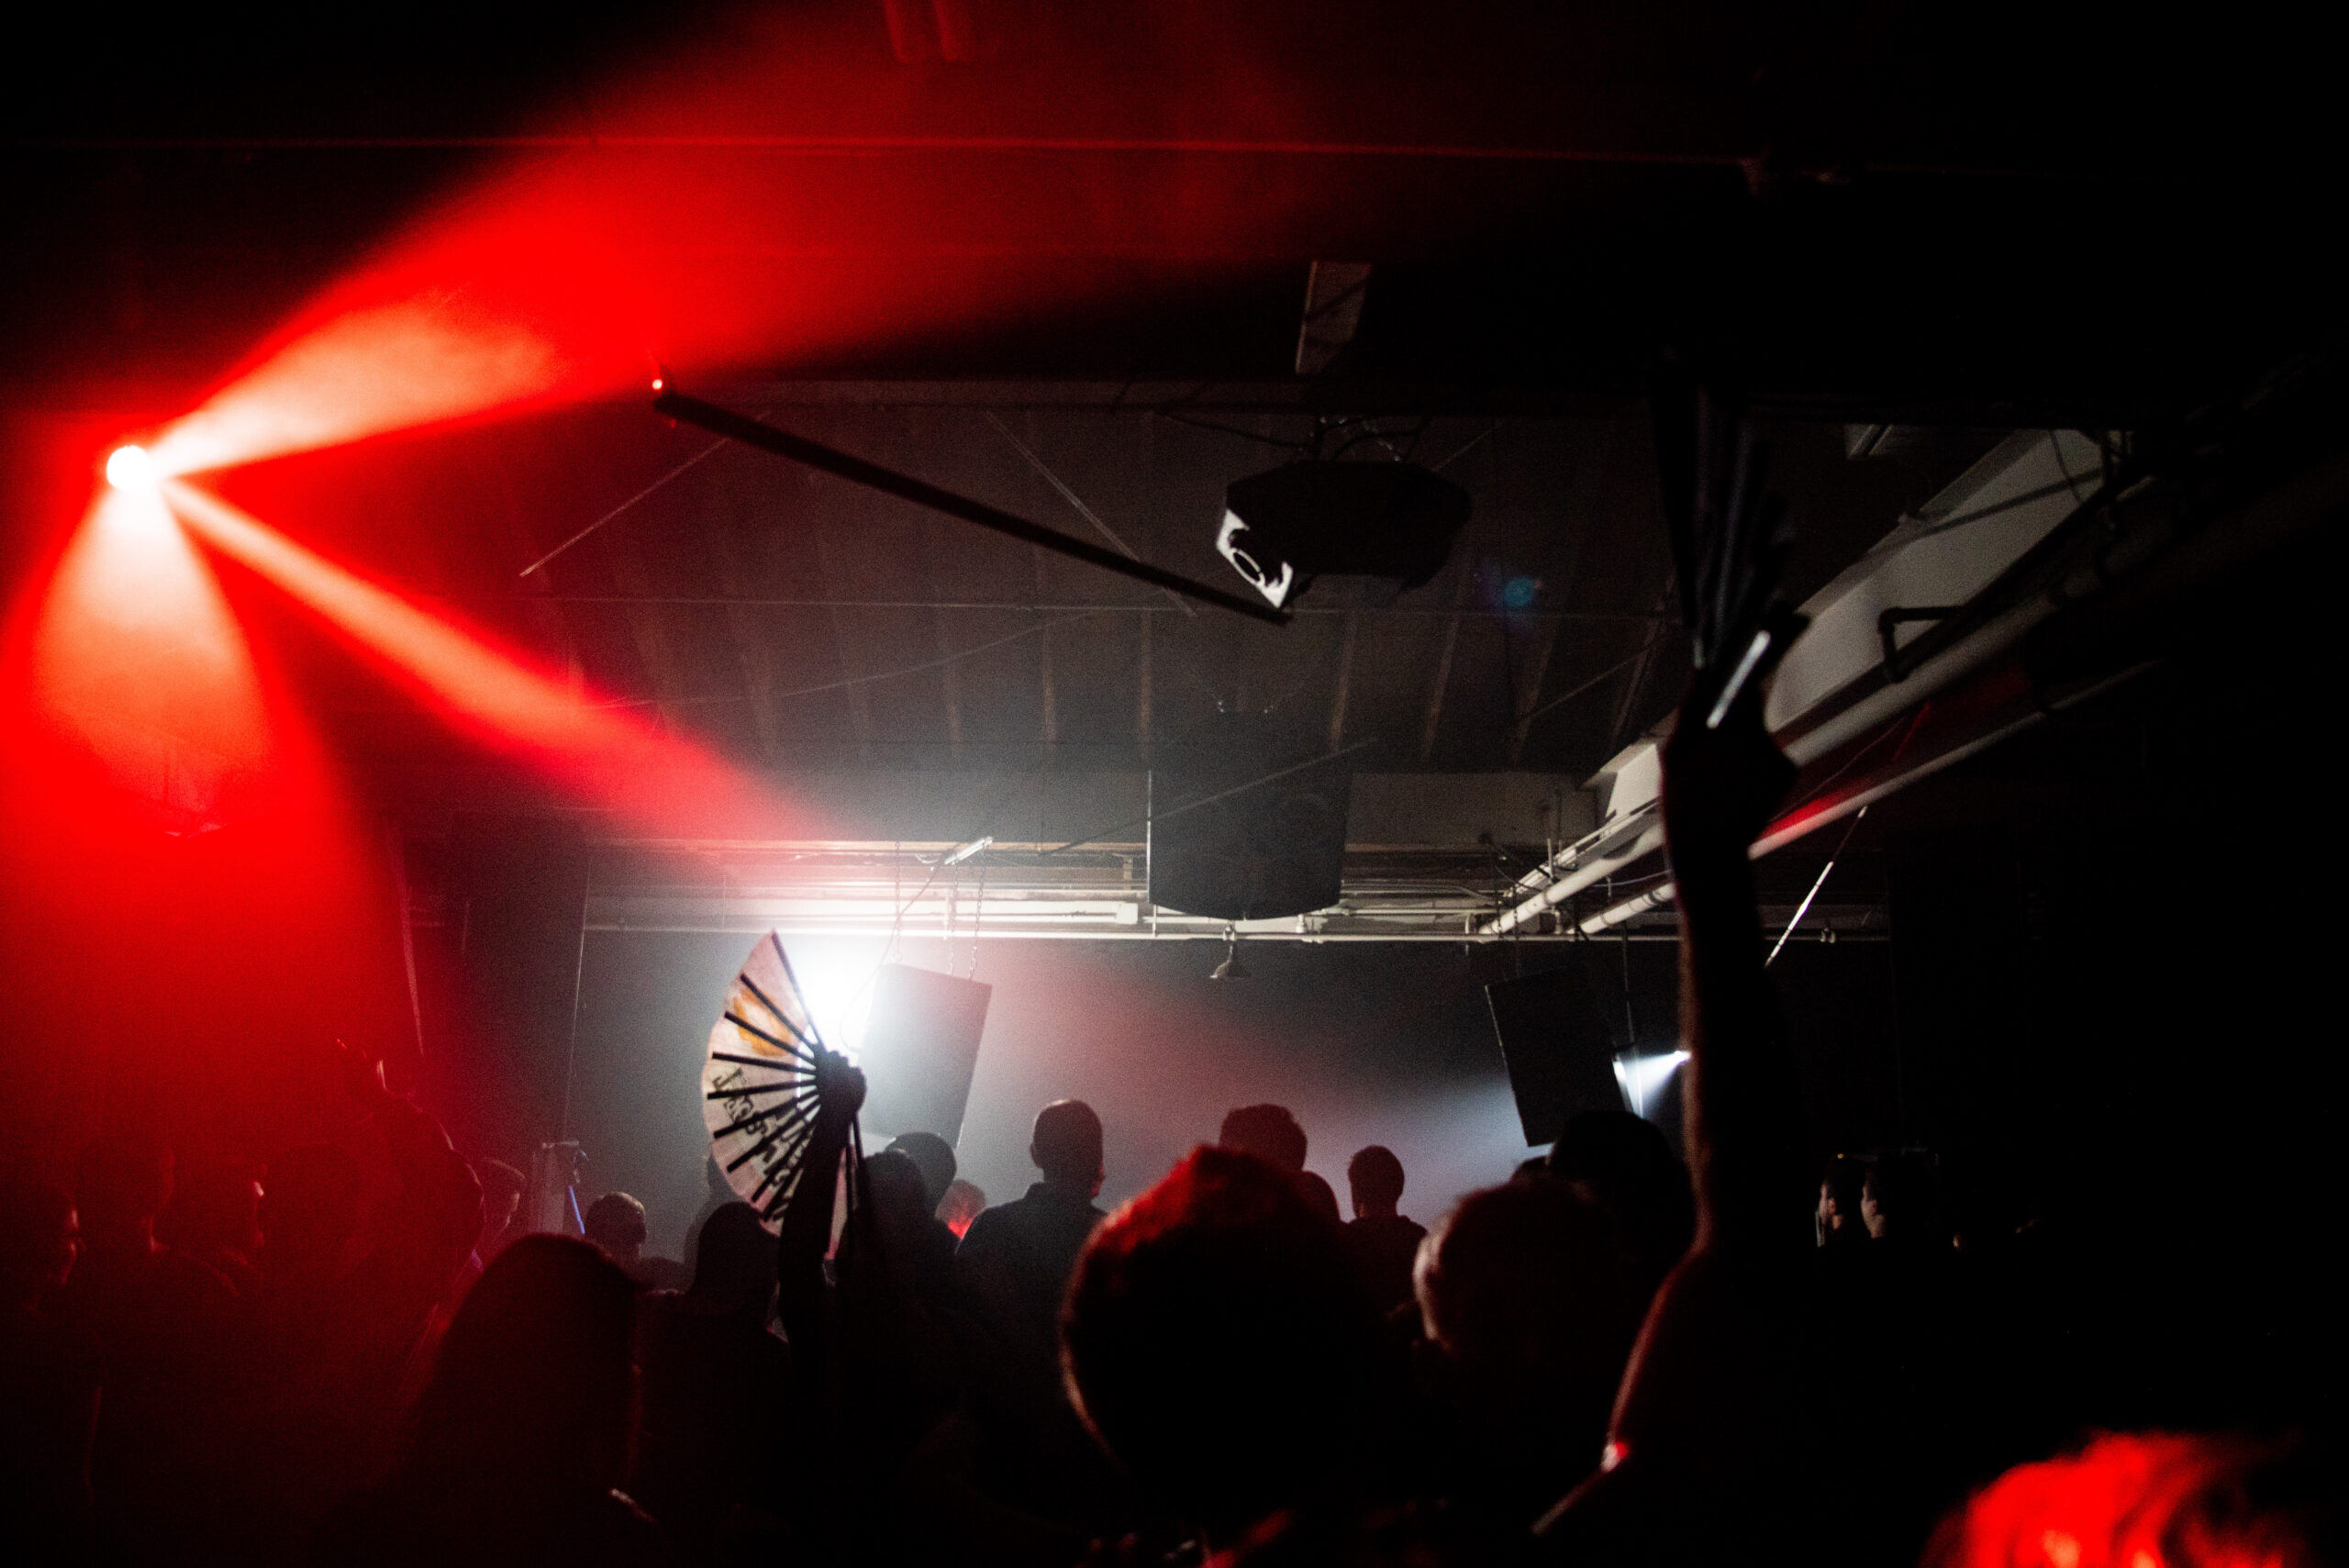 Three beams of red light over a crowd on a dark dance floor, and a white fan raised above the crowd.